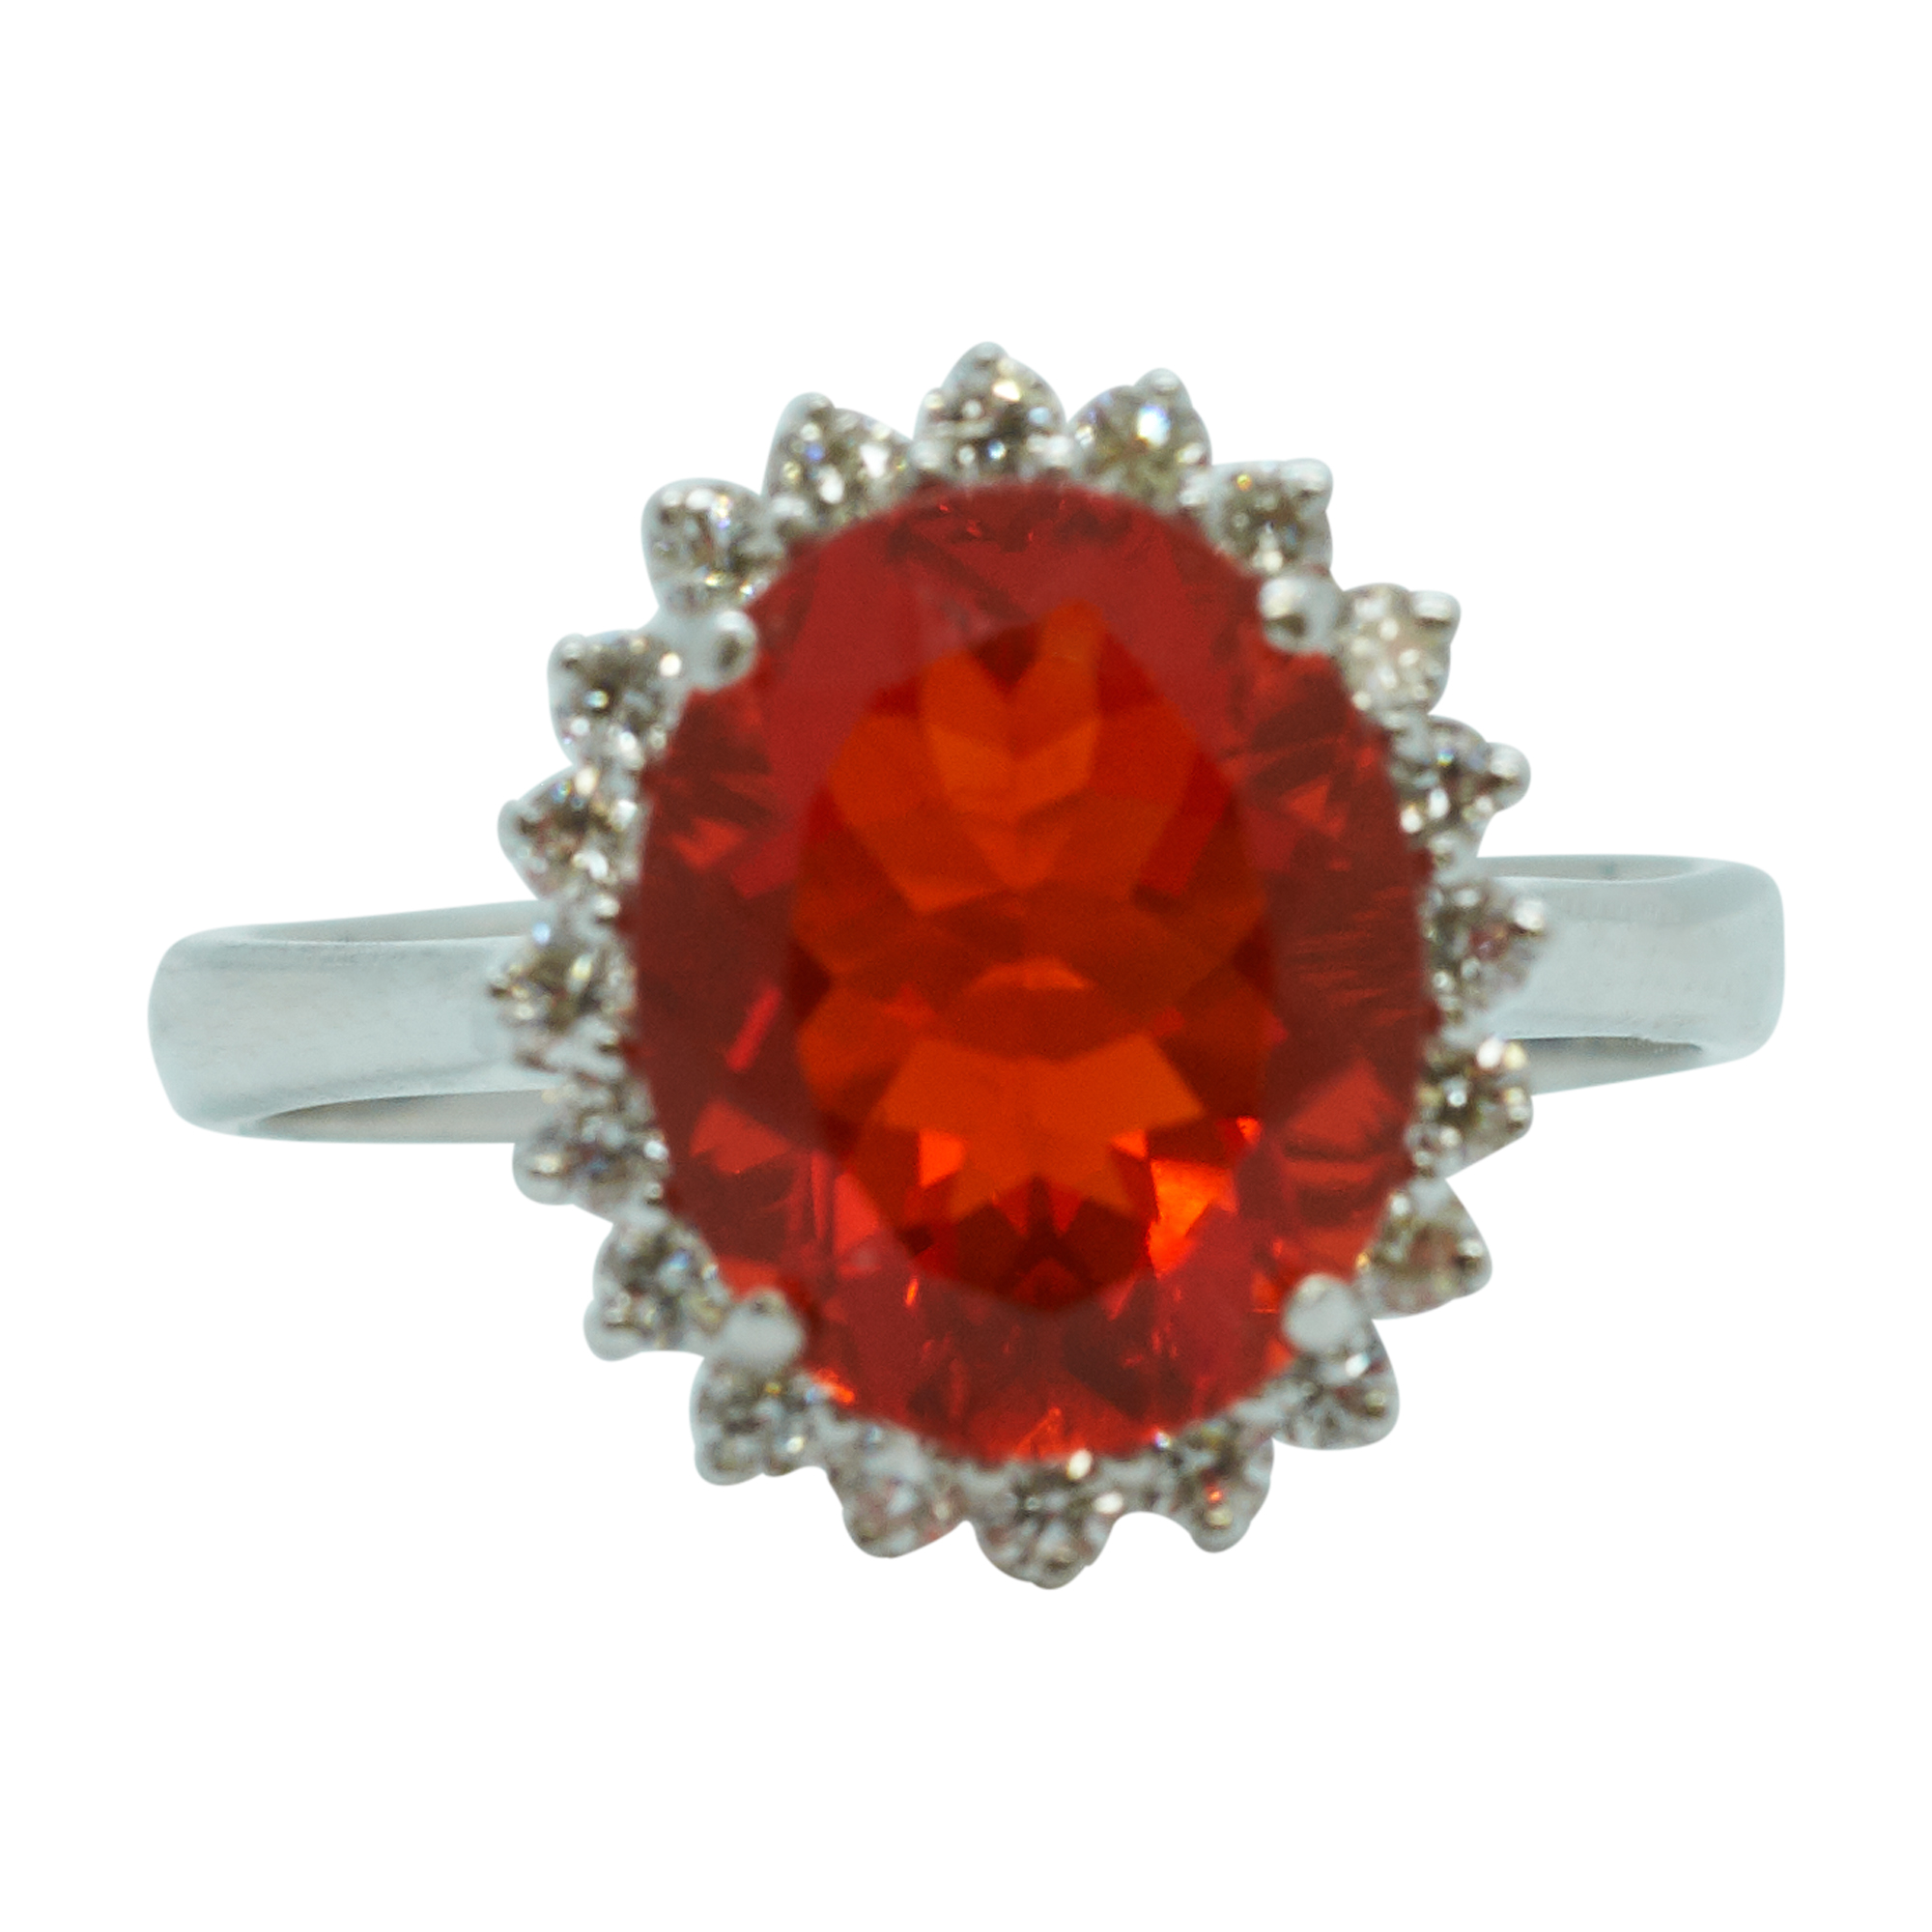 Mexican Fire Opal Diamond Cluster 18ct White Gold Ring